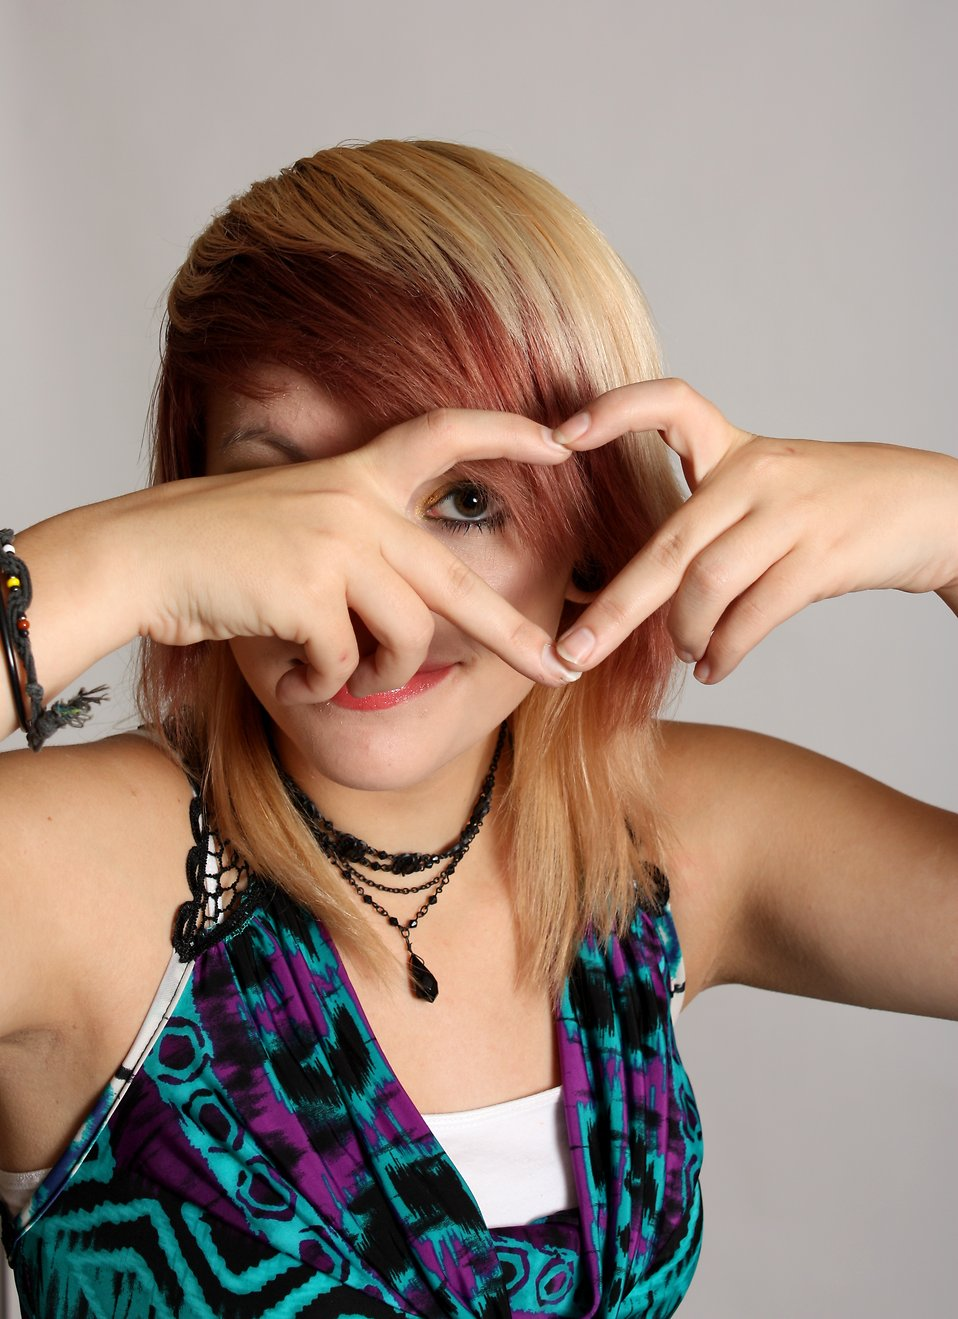 A beautiful young woman making a heart symbol with her hands : Free Stock Photo